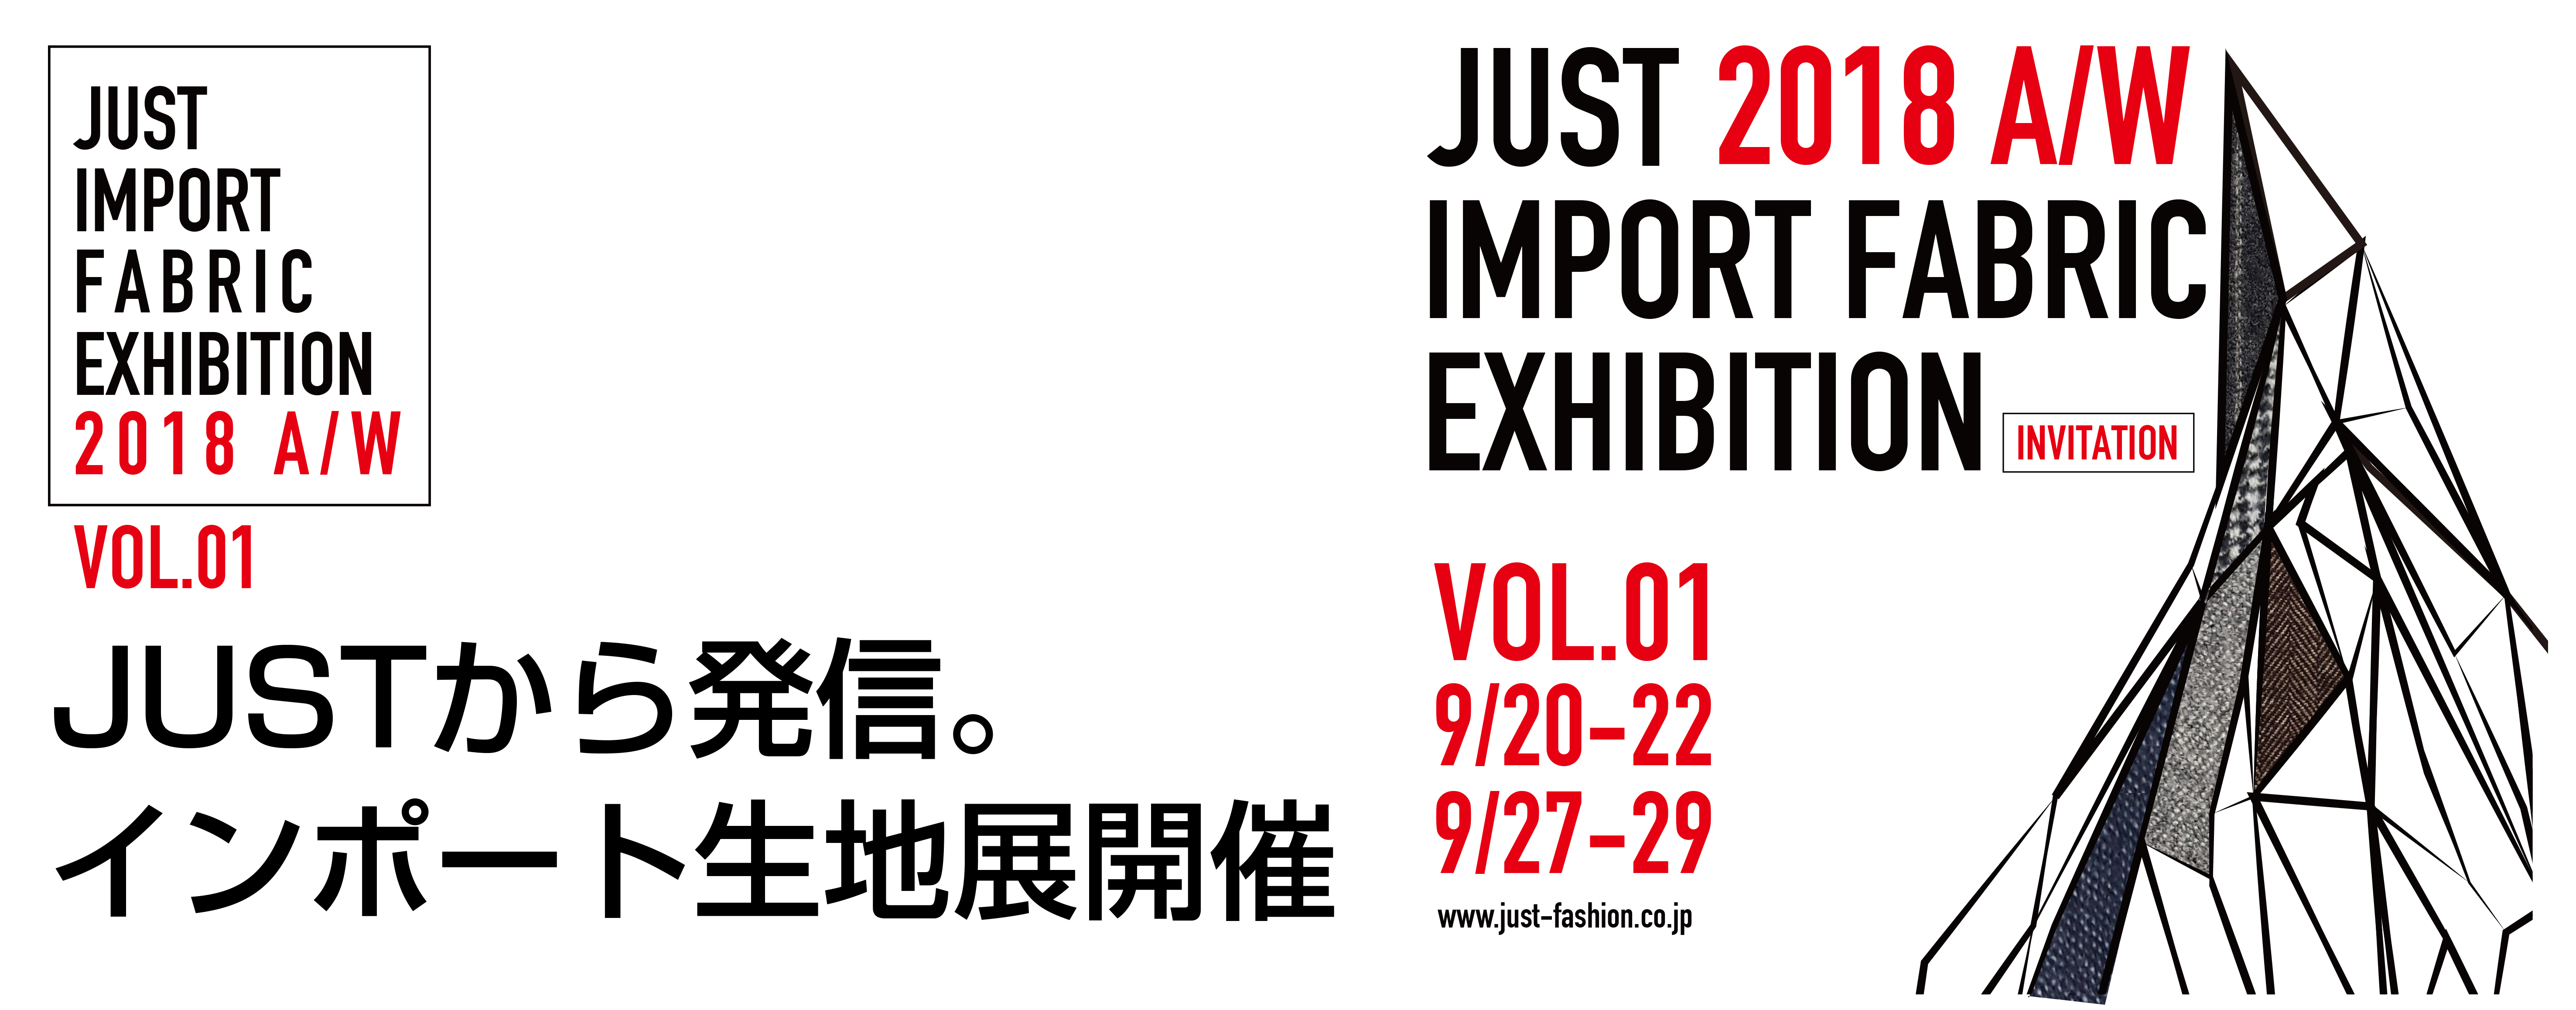 JUST IMPORT FABRIC EXHIBITION 2018AW